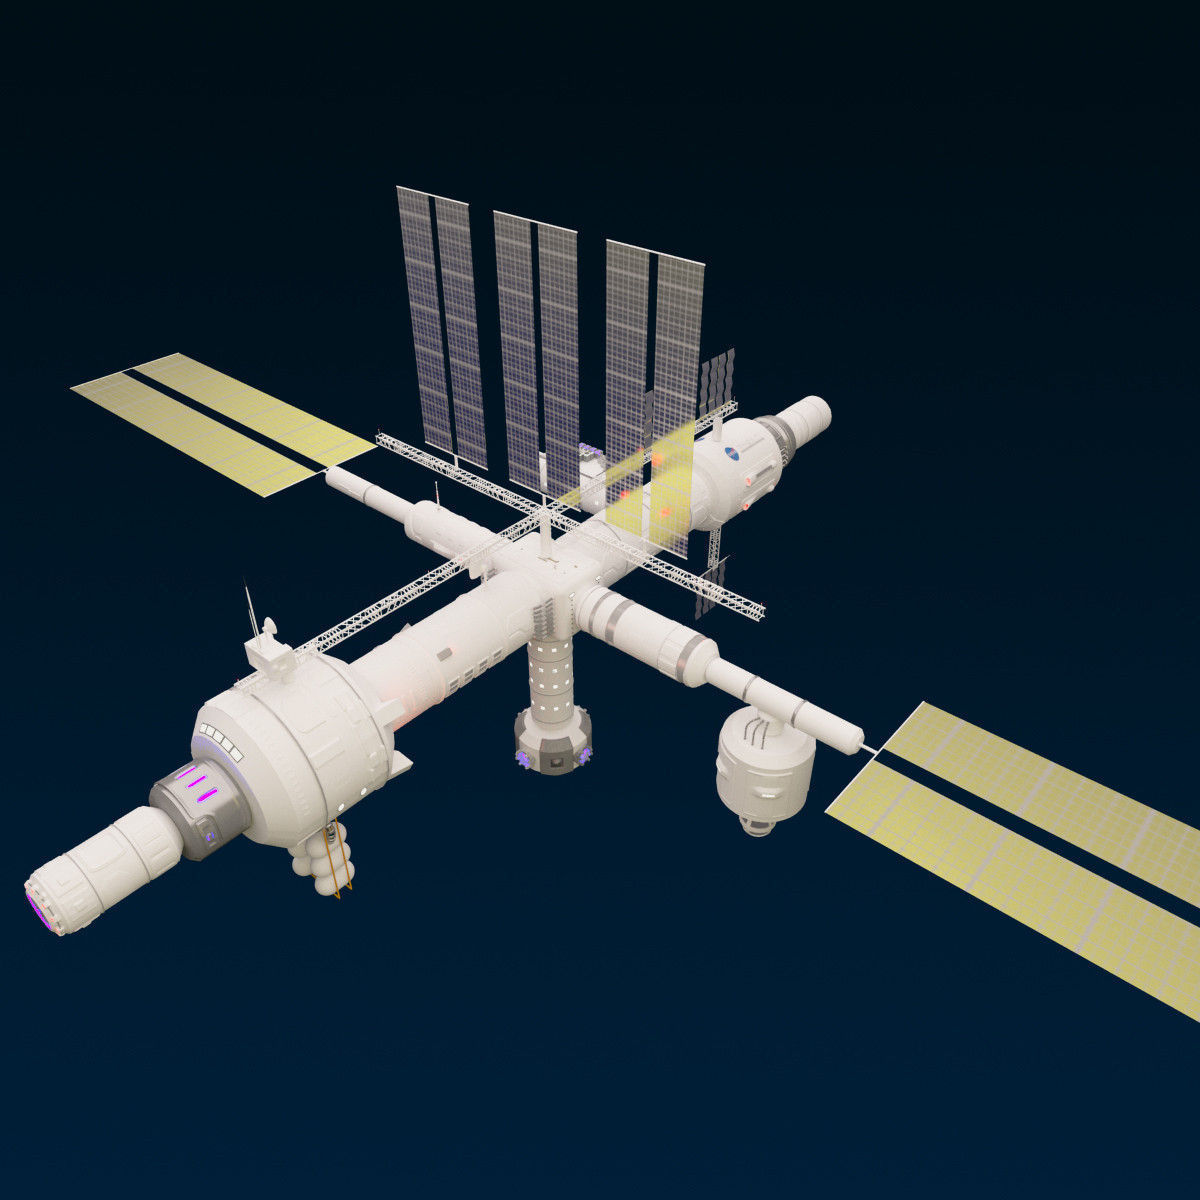 space station 3d models - photo #2